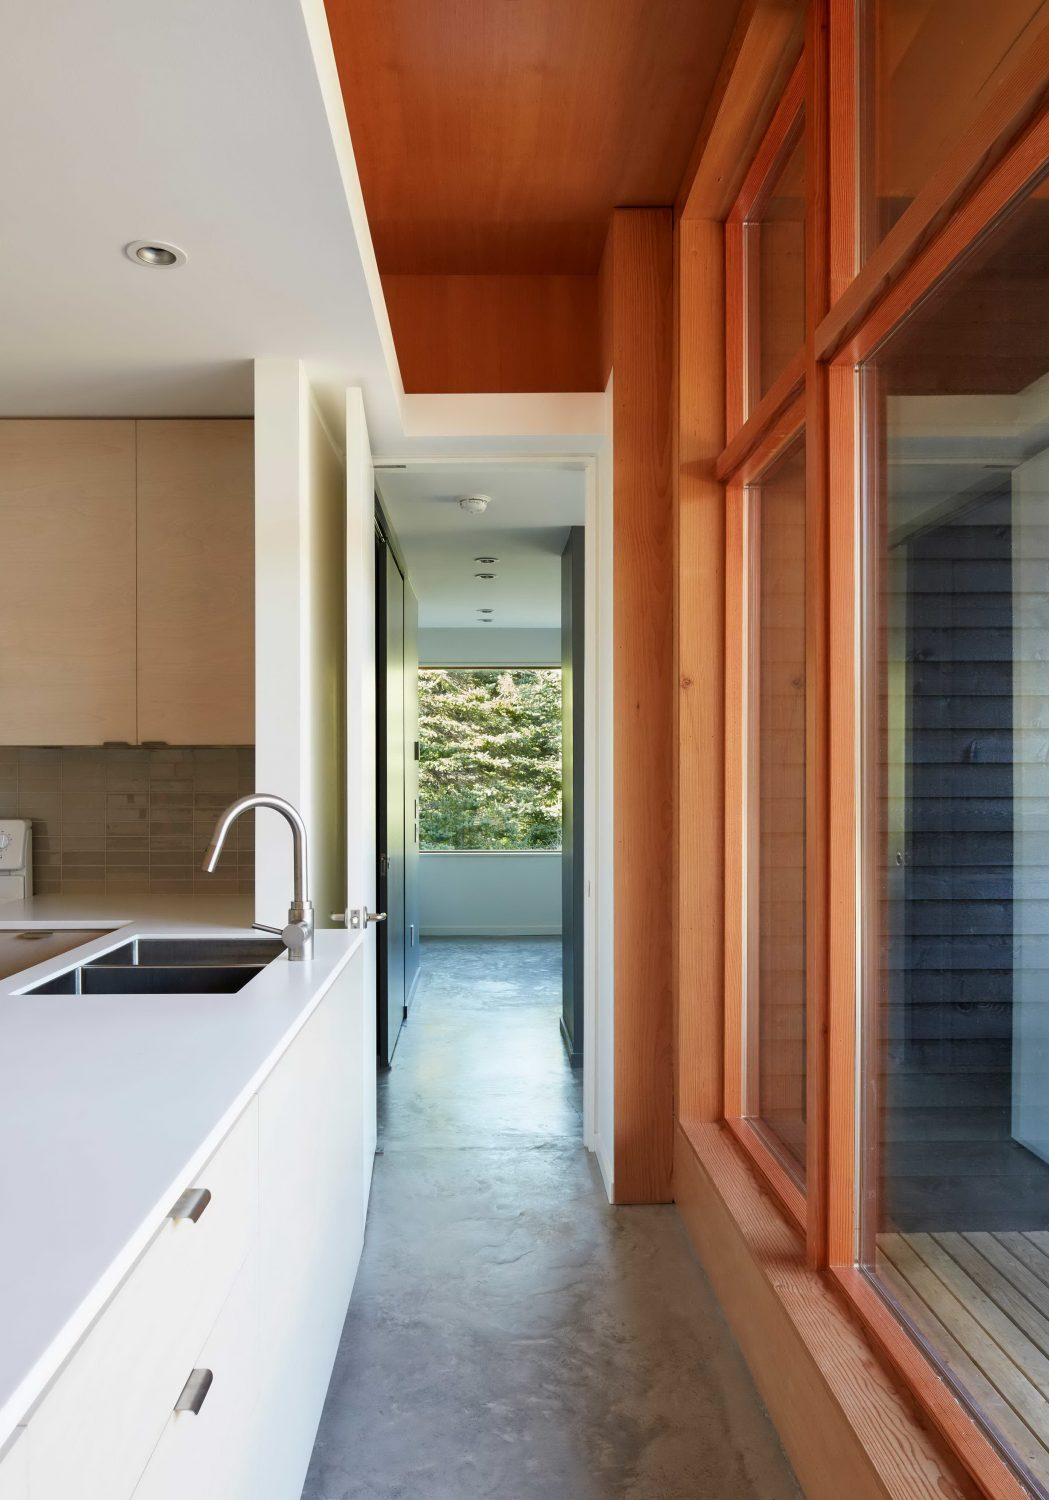 Lockeport Beach House by Nova Tayona Architects